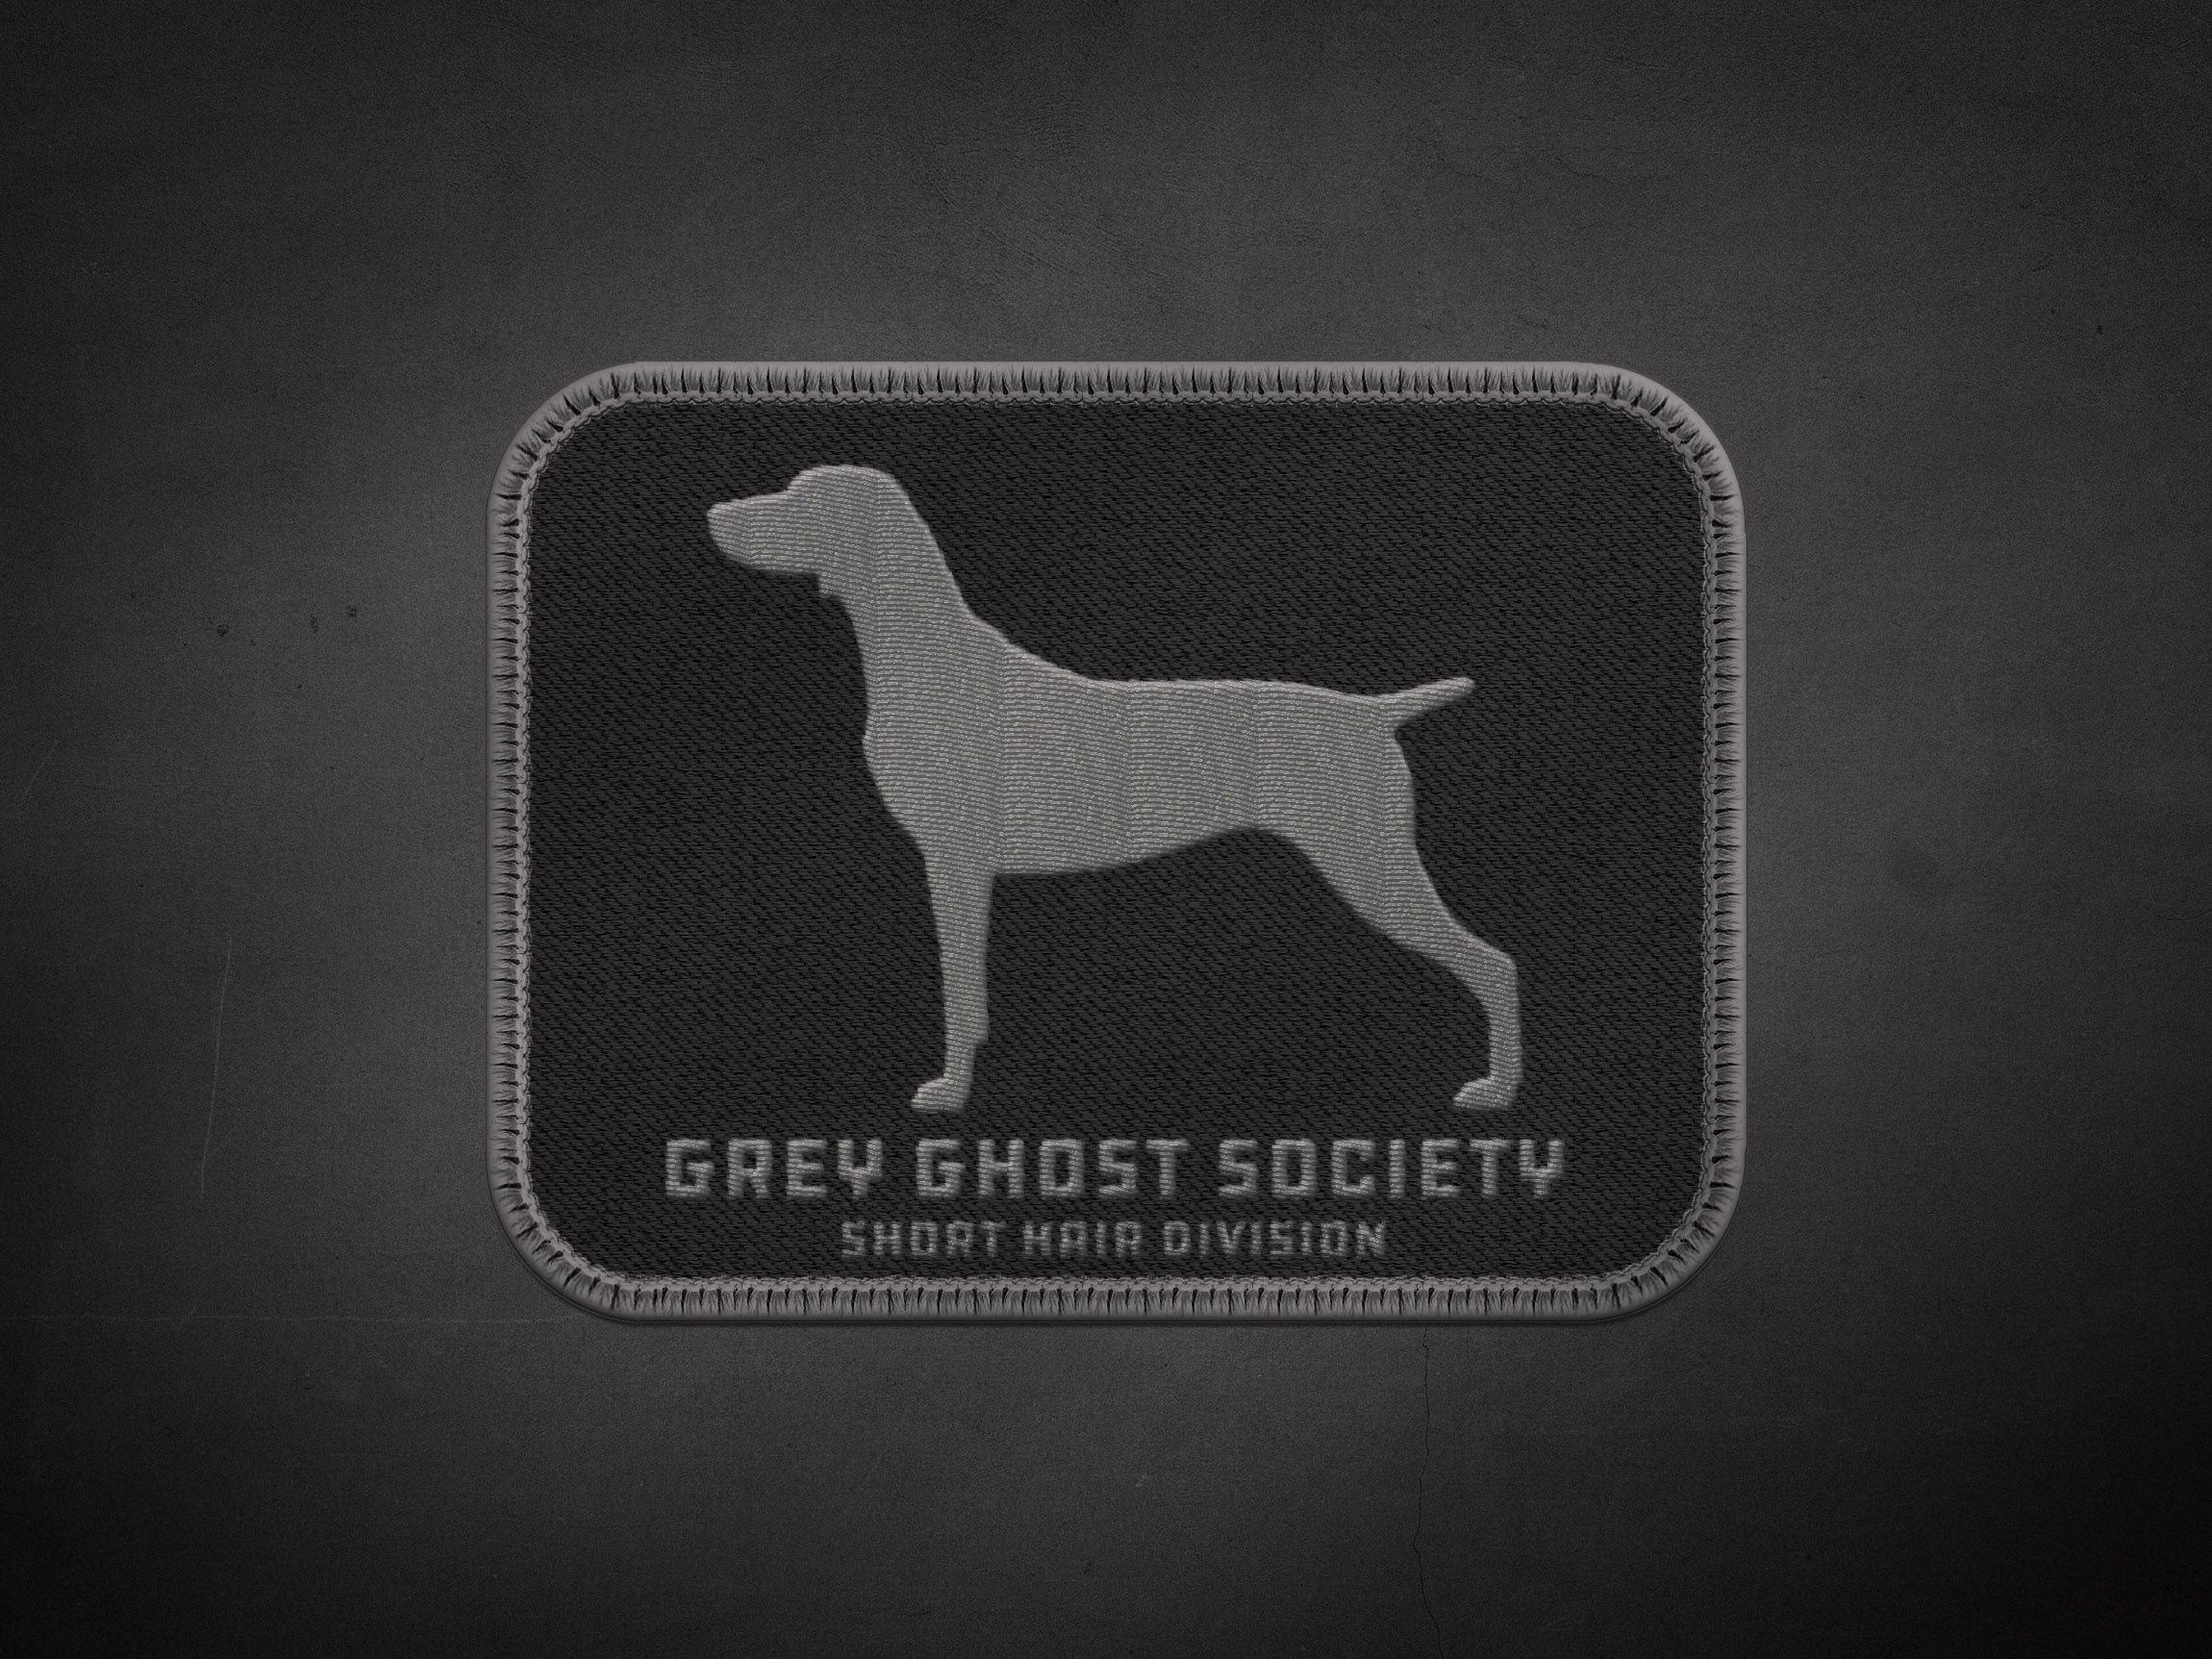 Weimaraner Short Hair Division Patch